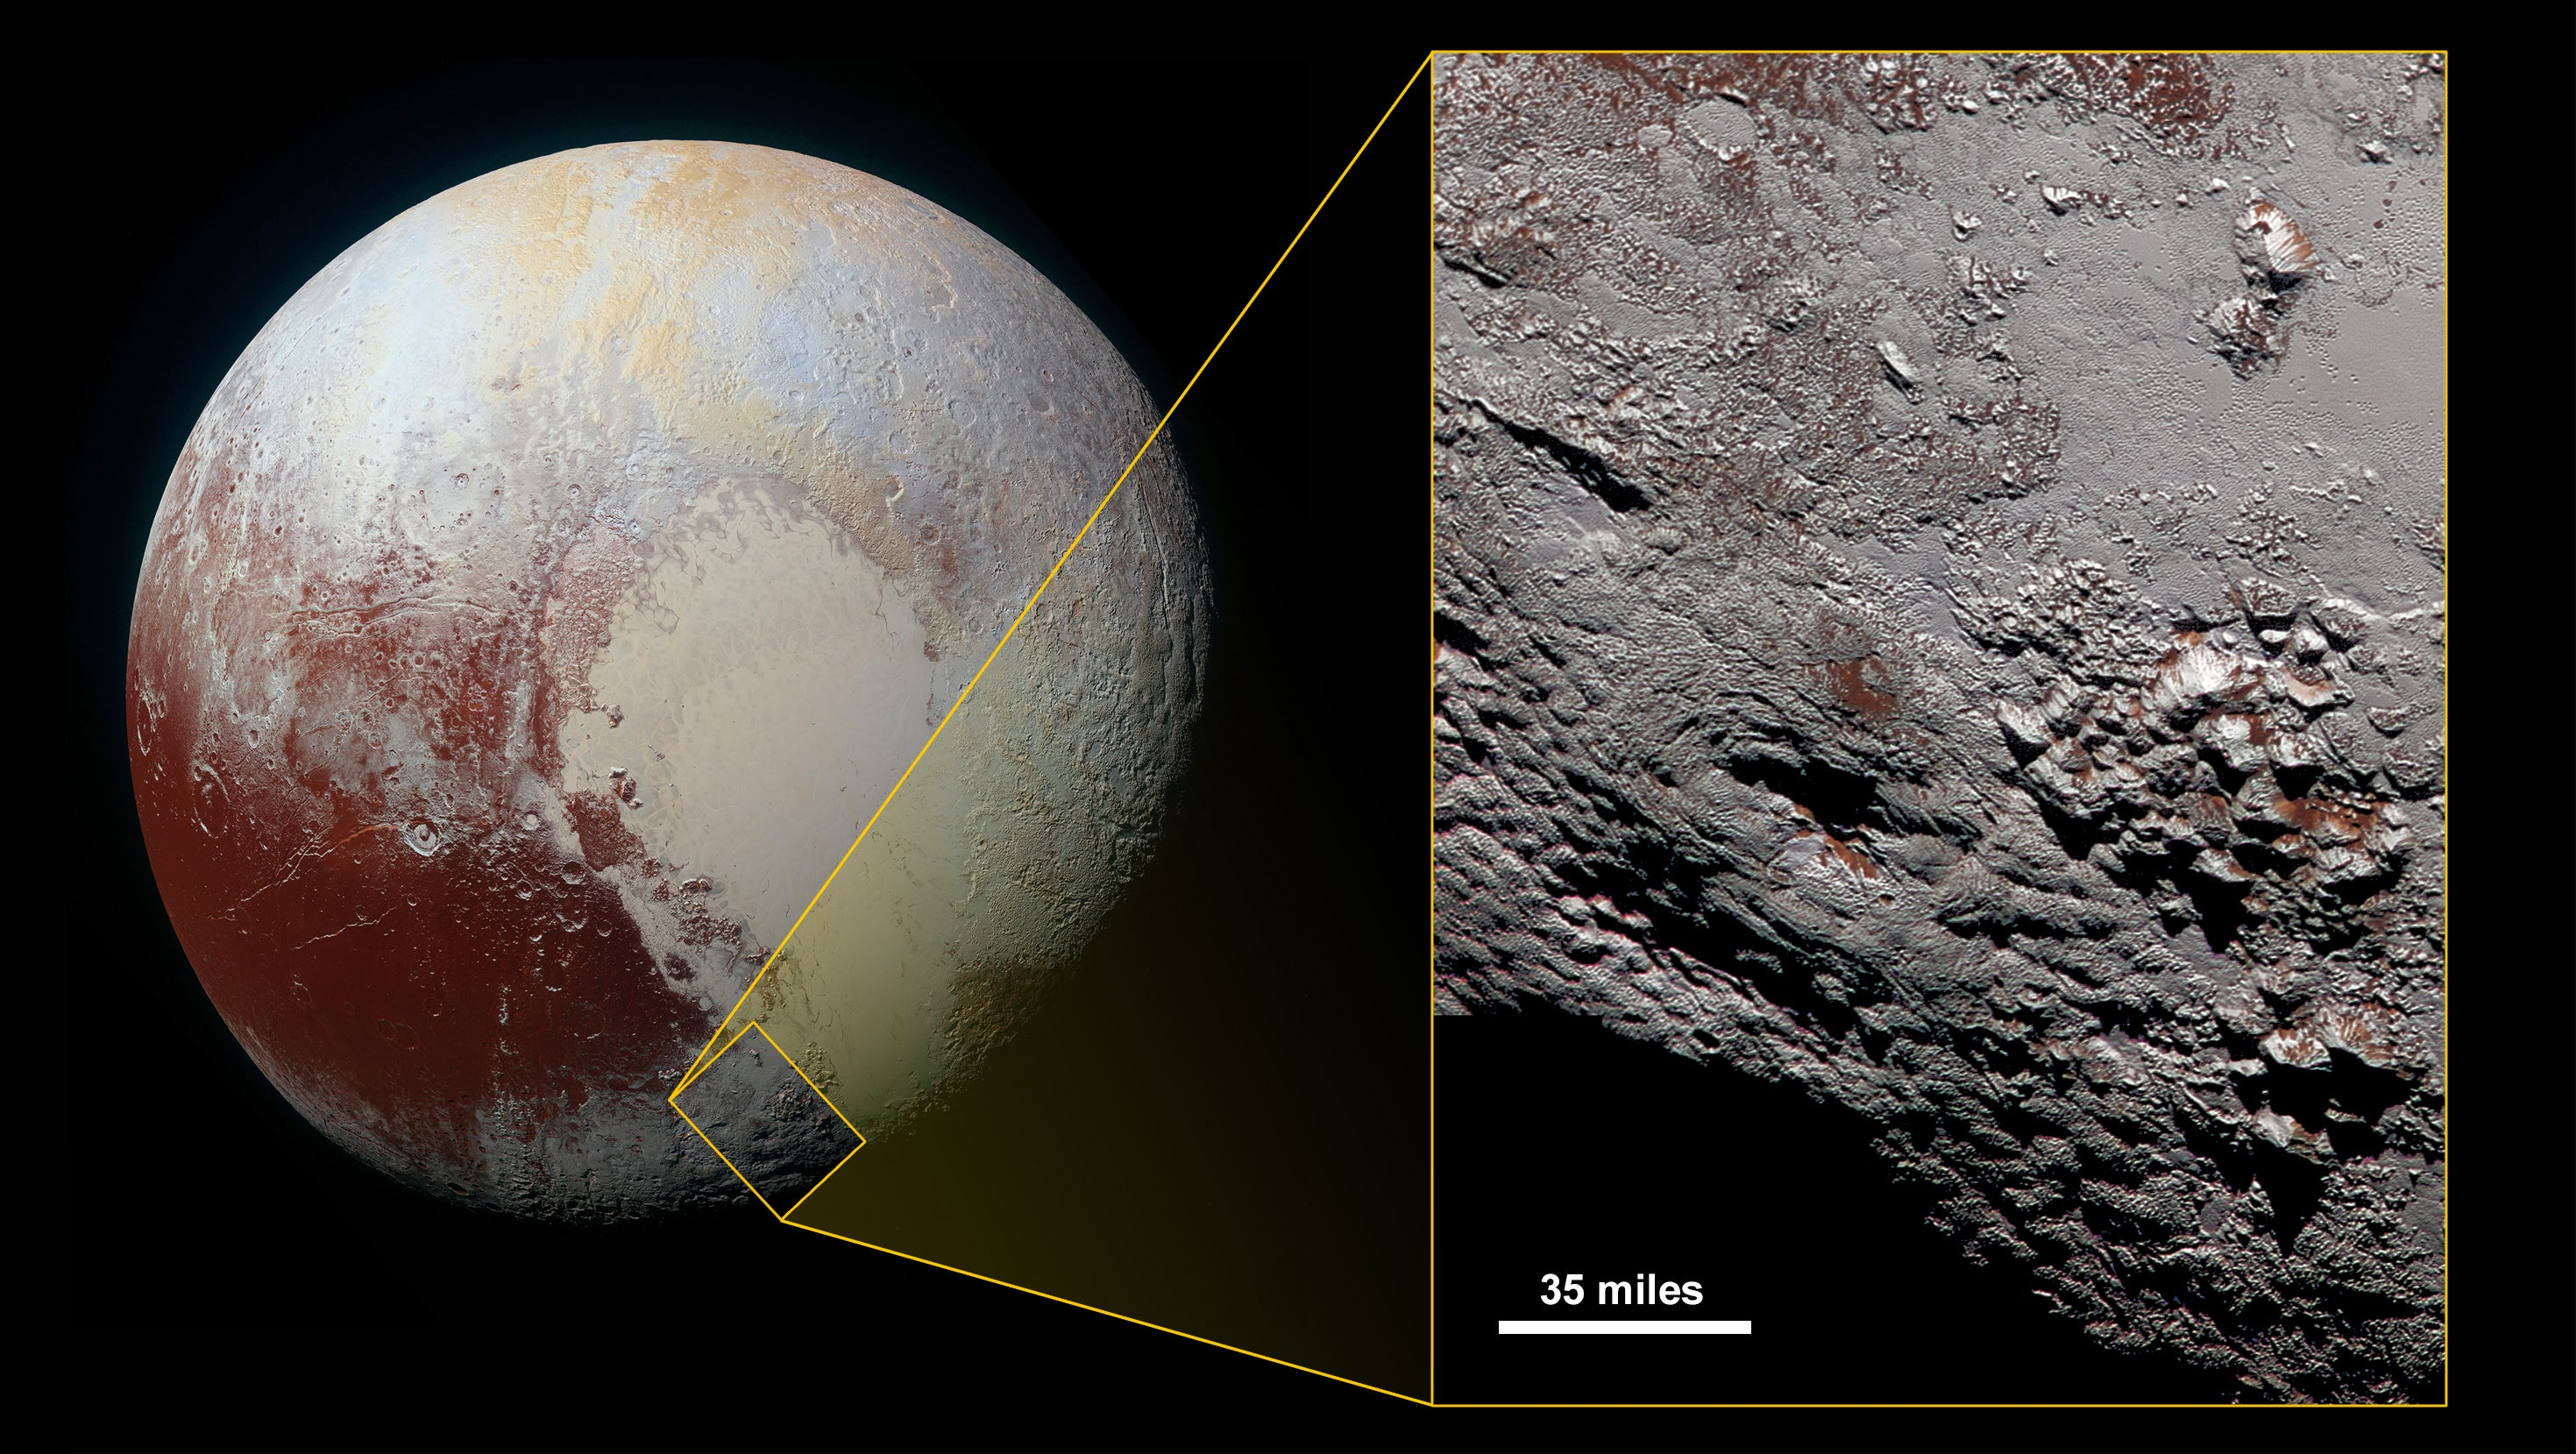 The wonders of Pluto revealed: NASA's latest findings are a sight to behold | Salon.com